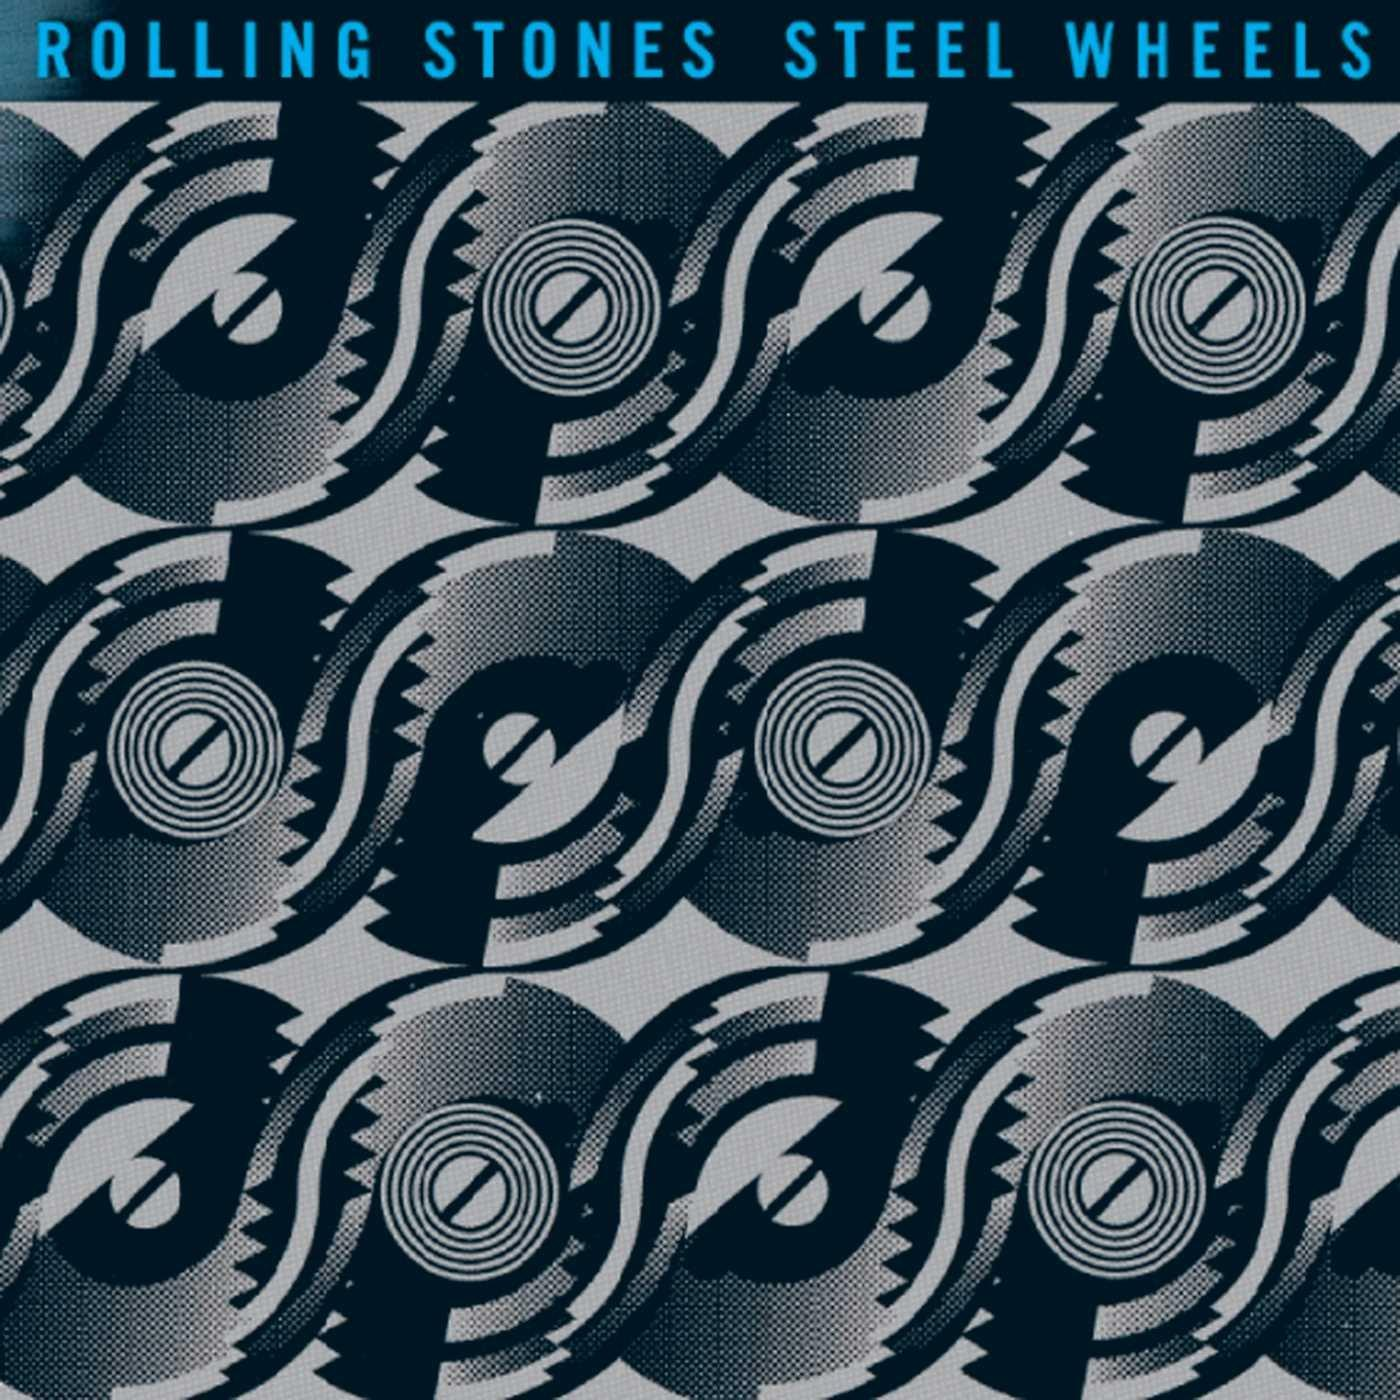 0602508773310 Polydor UK  The Rolling Stones Steel Wheels - Half Speed Mastered (LP)